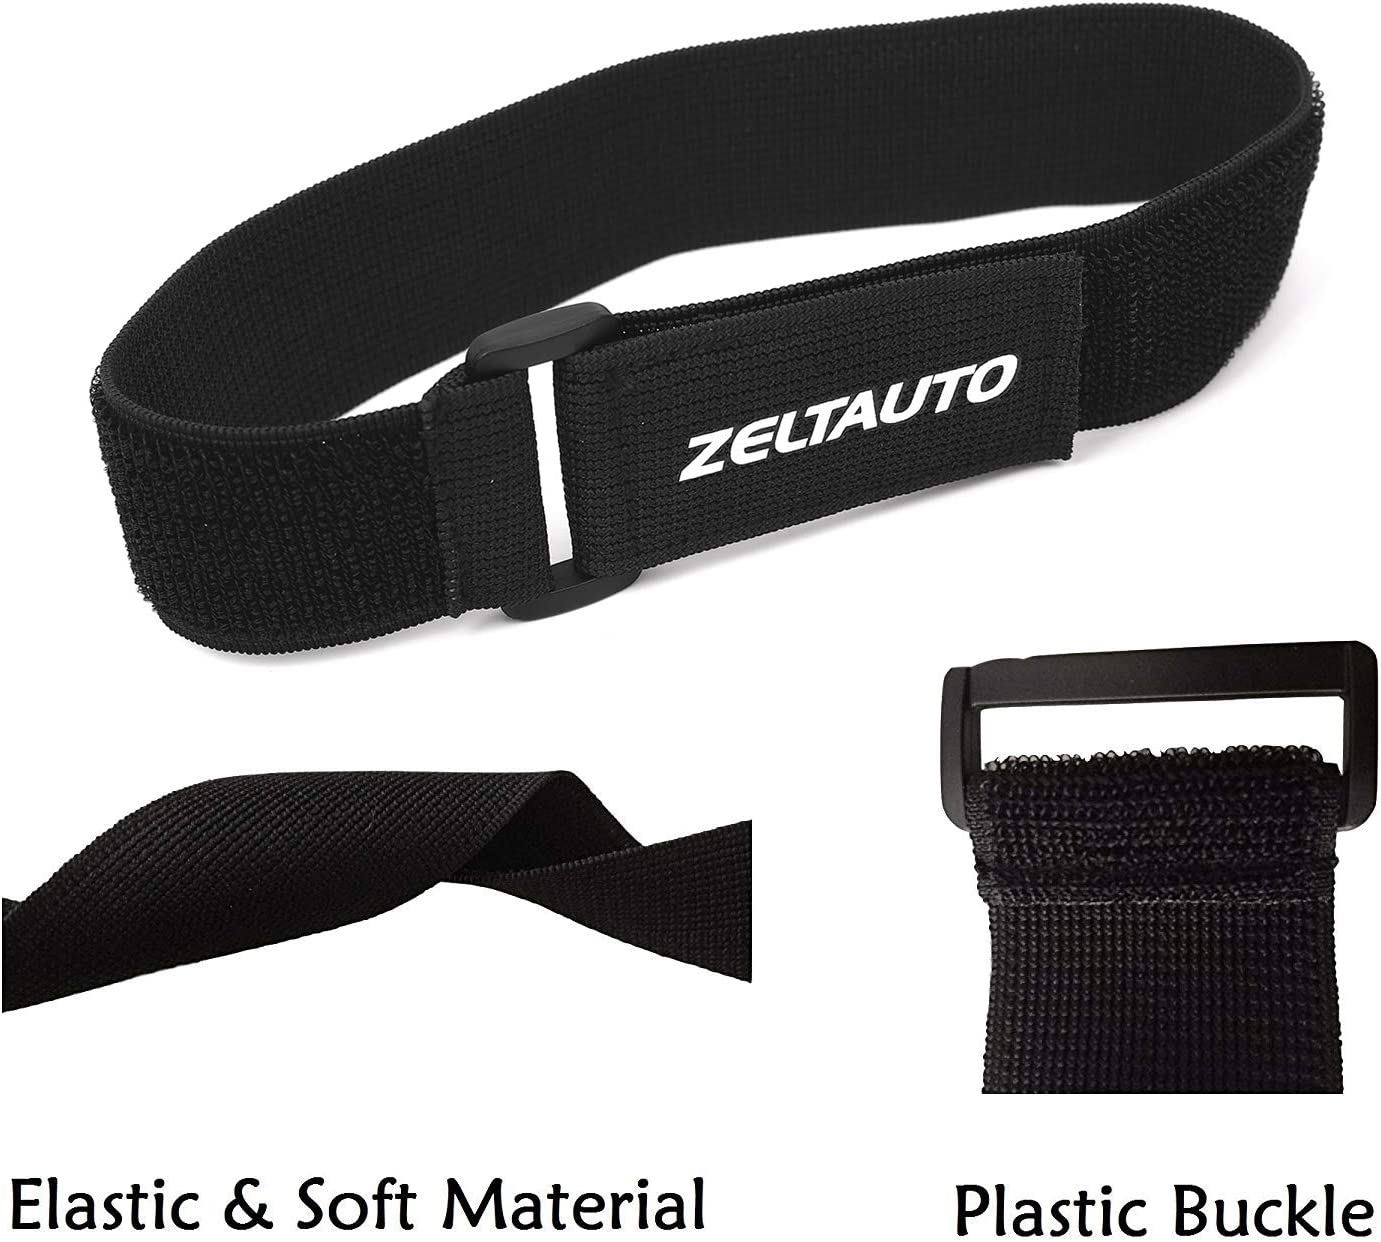 4 Pcs, 1.5 x 16 In Fastening Magic Strap with Plastic Buckle End Black Zeltauto Elastic Hook and Loop Cable Tie